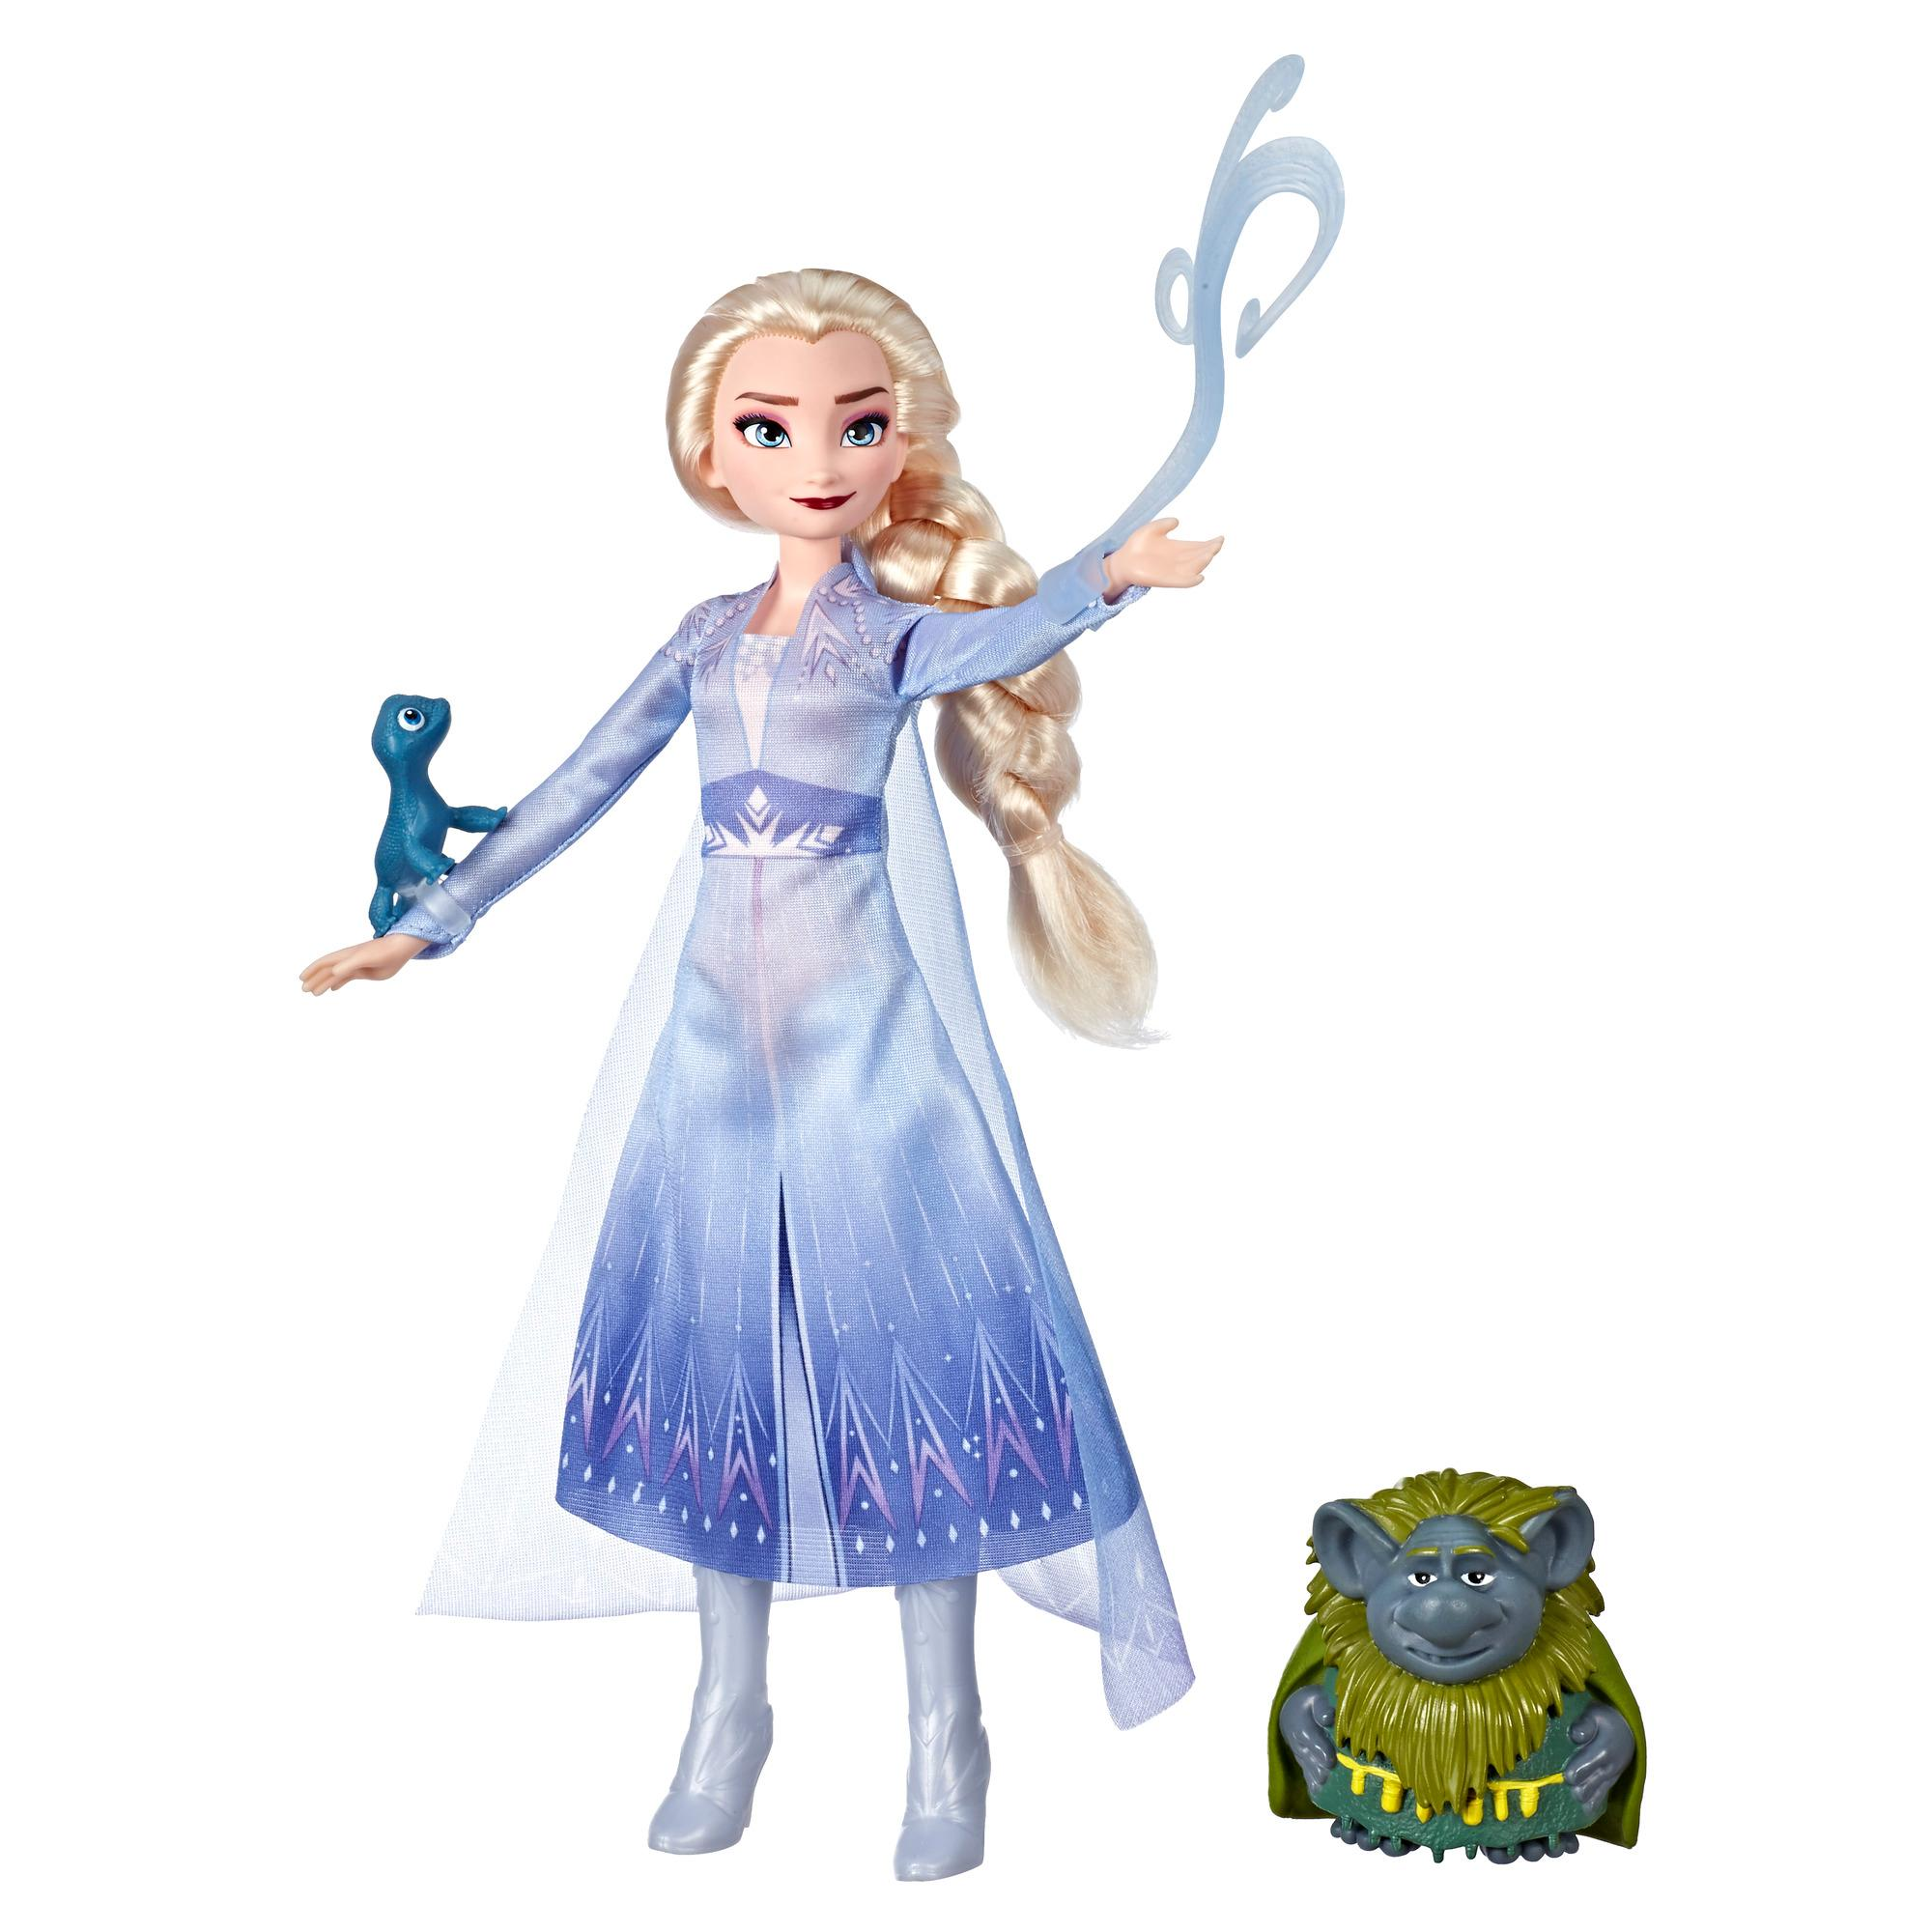 Disney Frozen Elsa Fashion Doll In Travel Outfit Inspired by Frozen 2